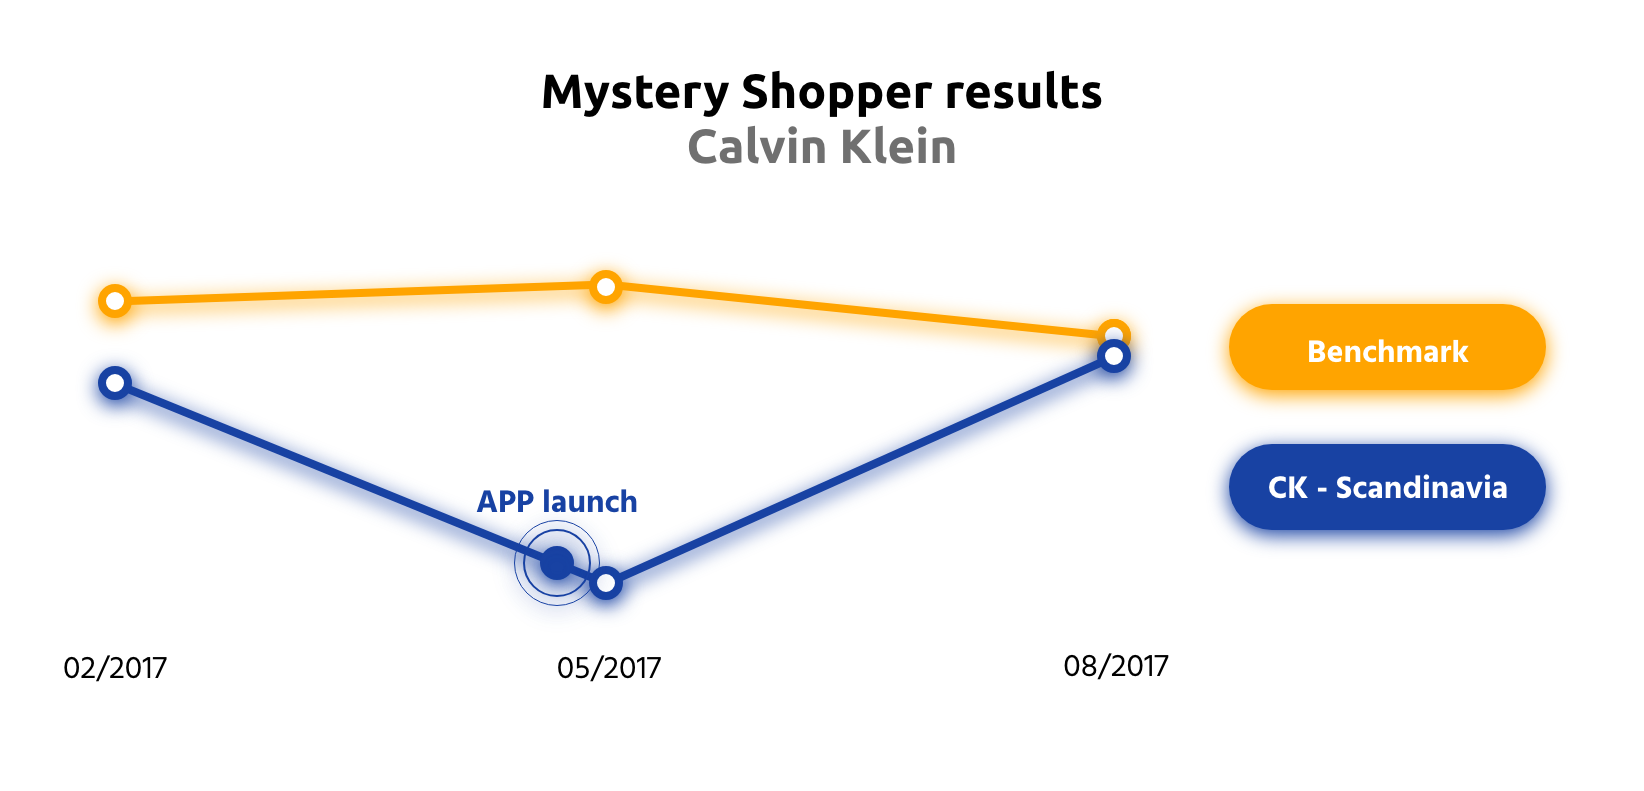 Calvin Klein mystery shopper results after using ATOBI for three months